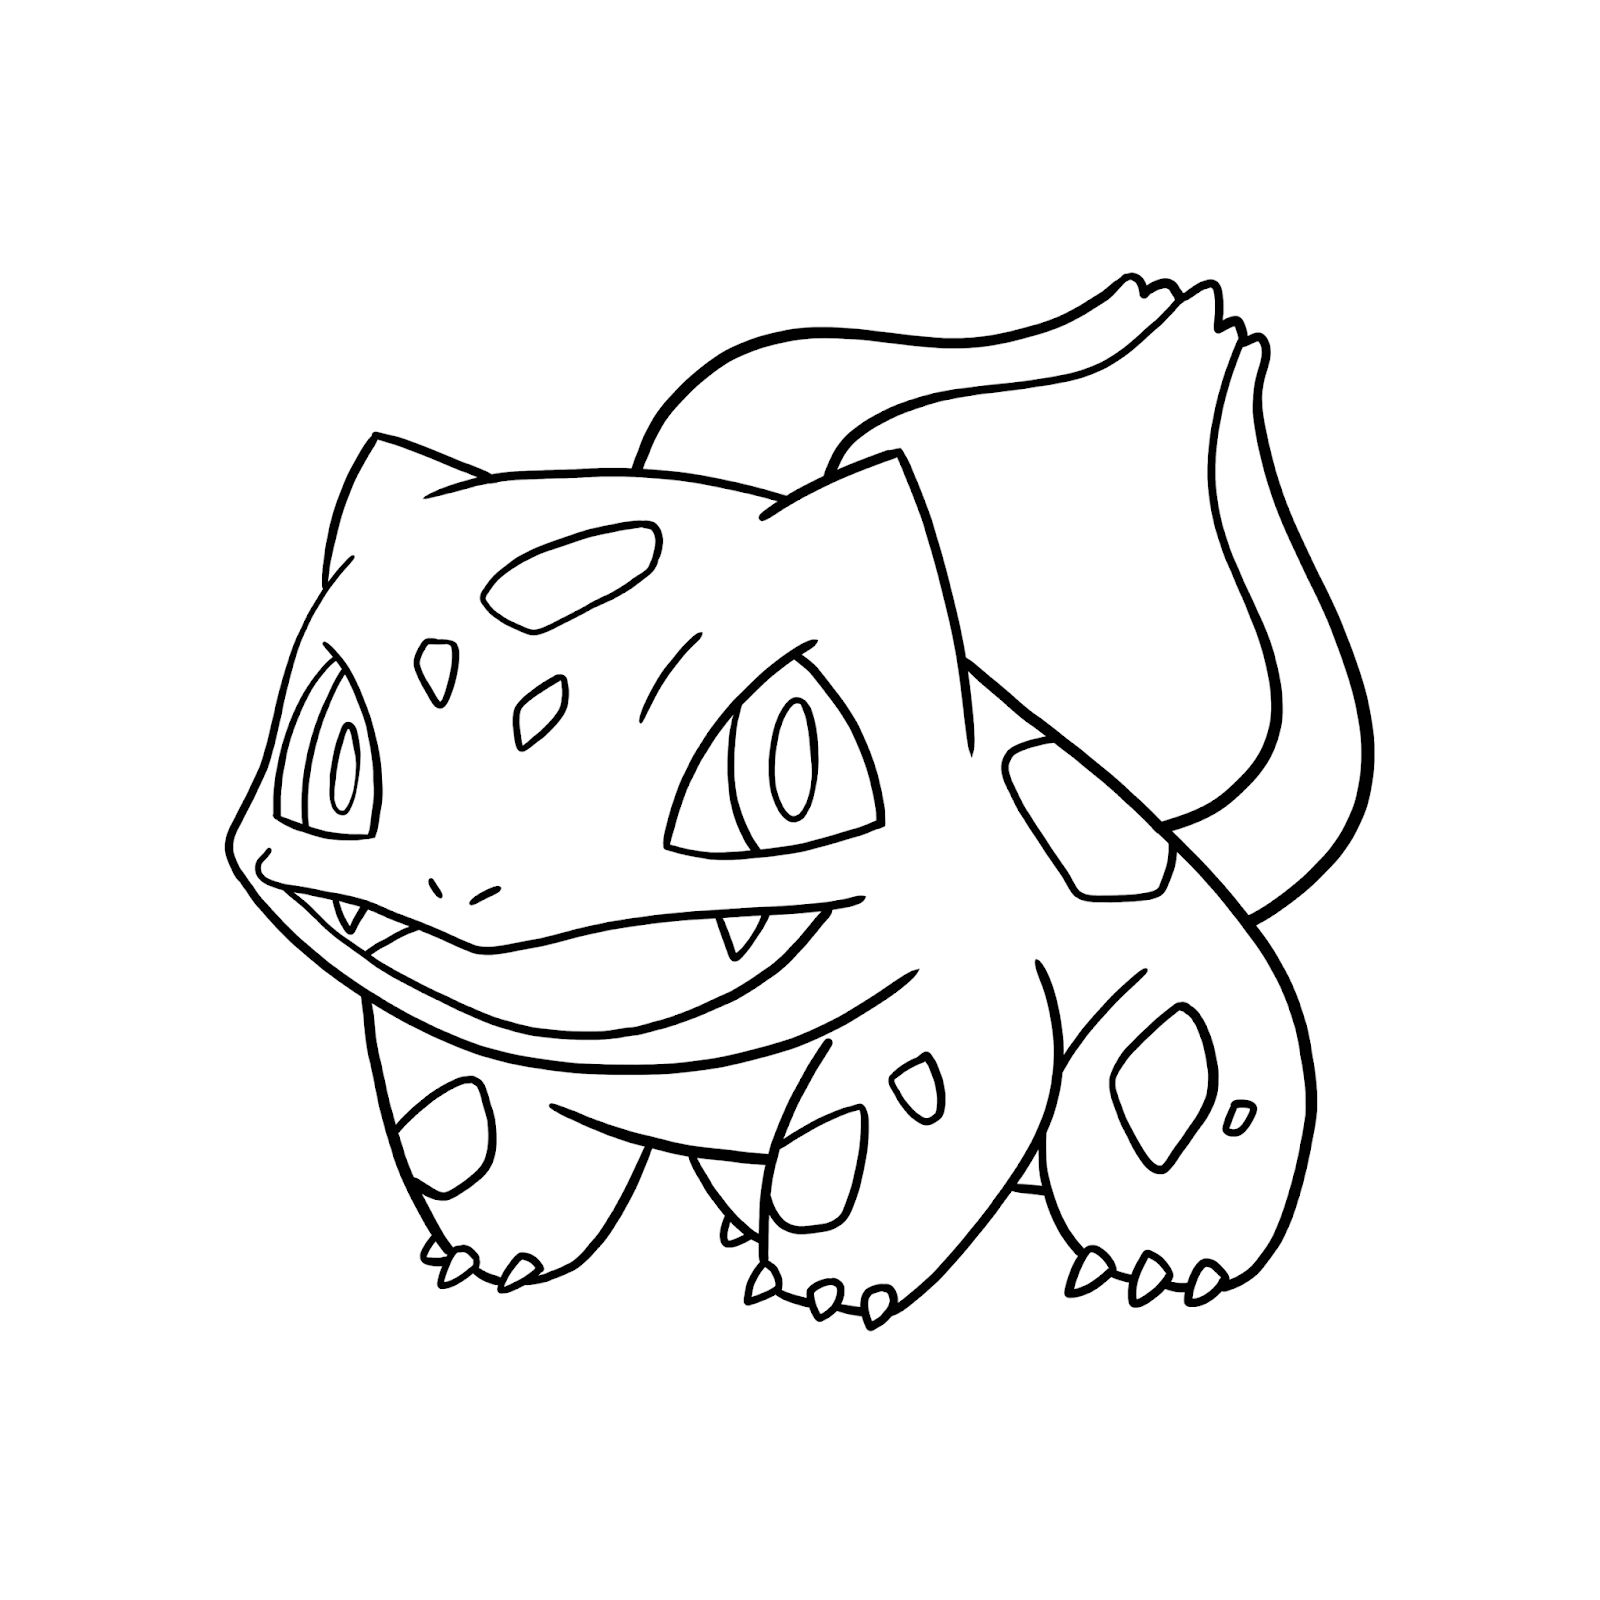 Bulbasaur Coloring Pages Free Pokemon Coloring Pages Pokemon Para Colorir Desenhos Para Colorir Pokemon Pokemon Desenho